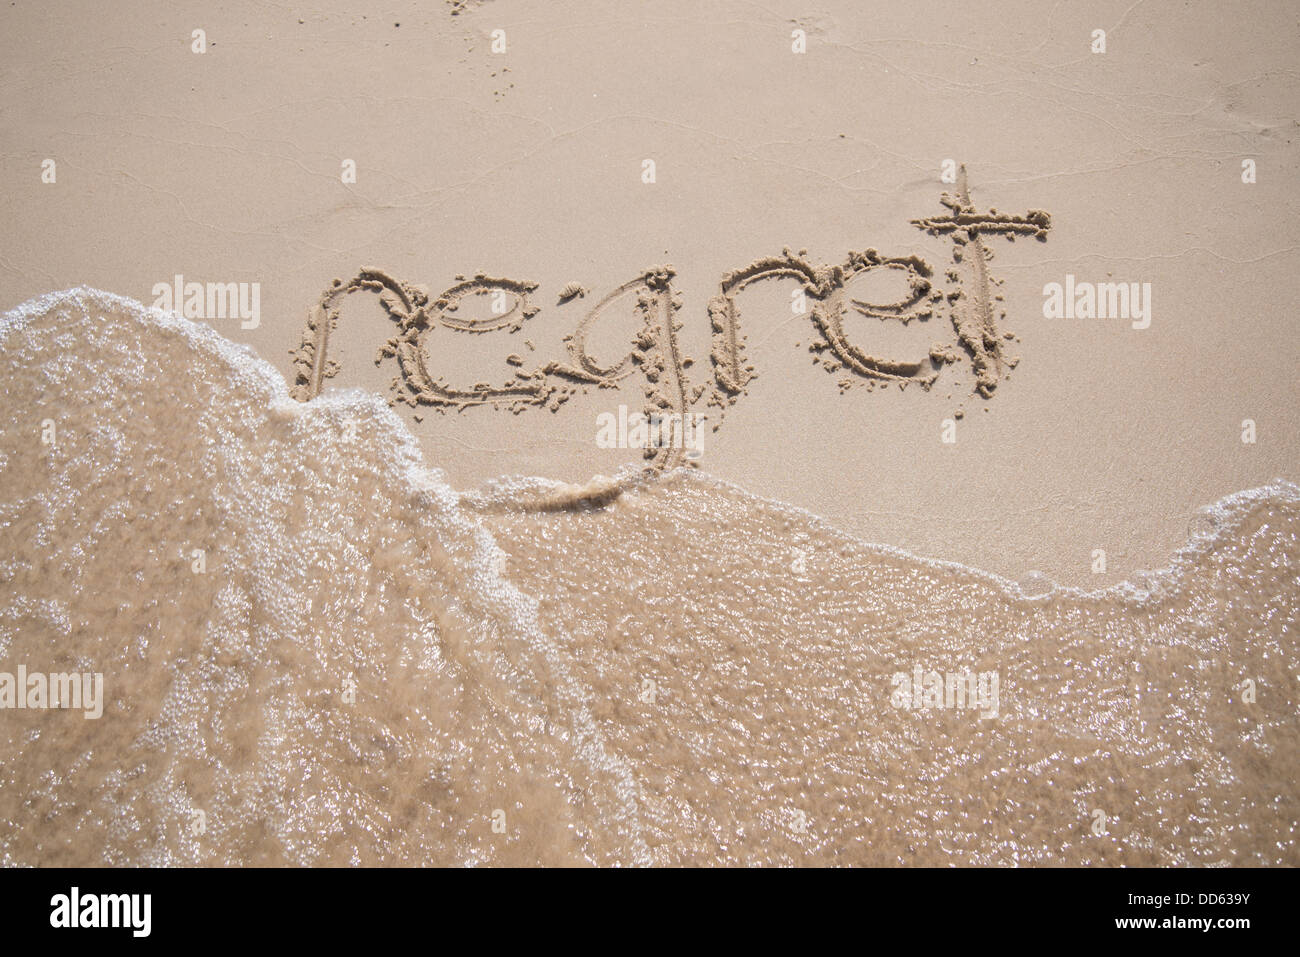 The word 'regret' written in the sand, being washed away by a wave. - Stock Image